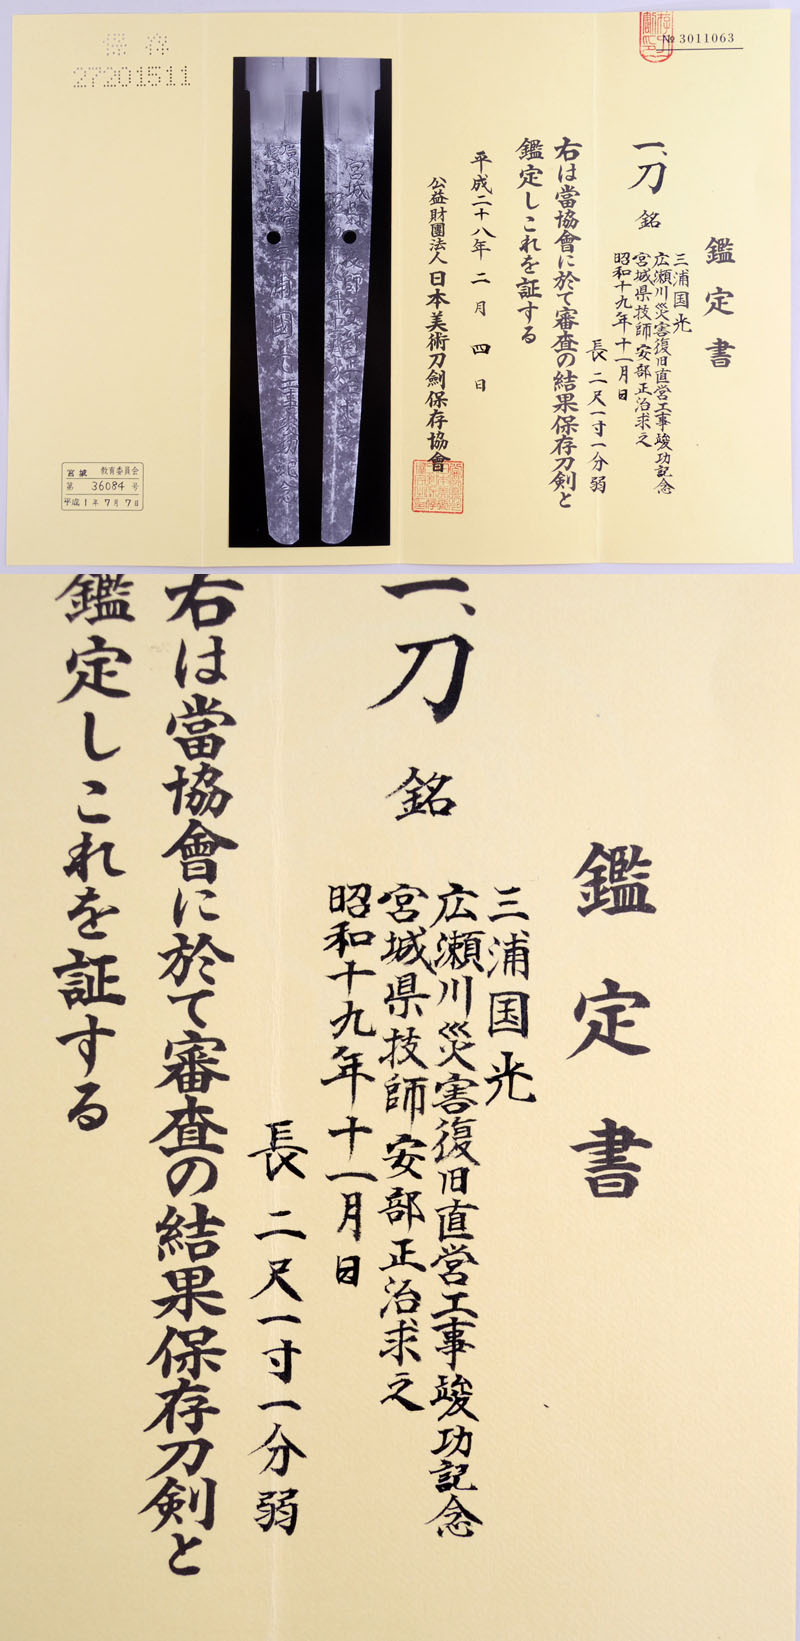 三浦国光 Picture of Certificate